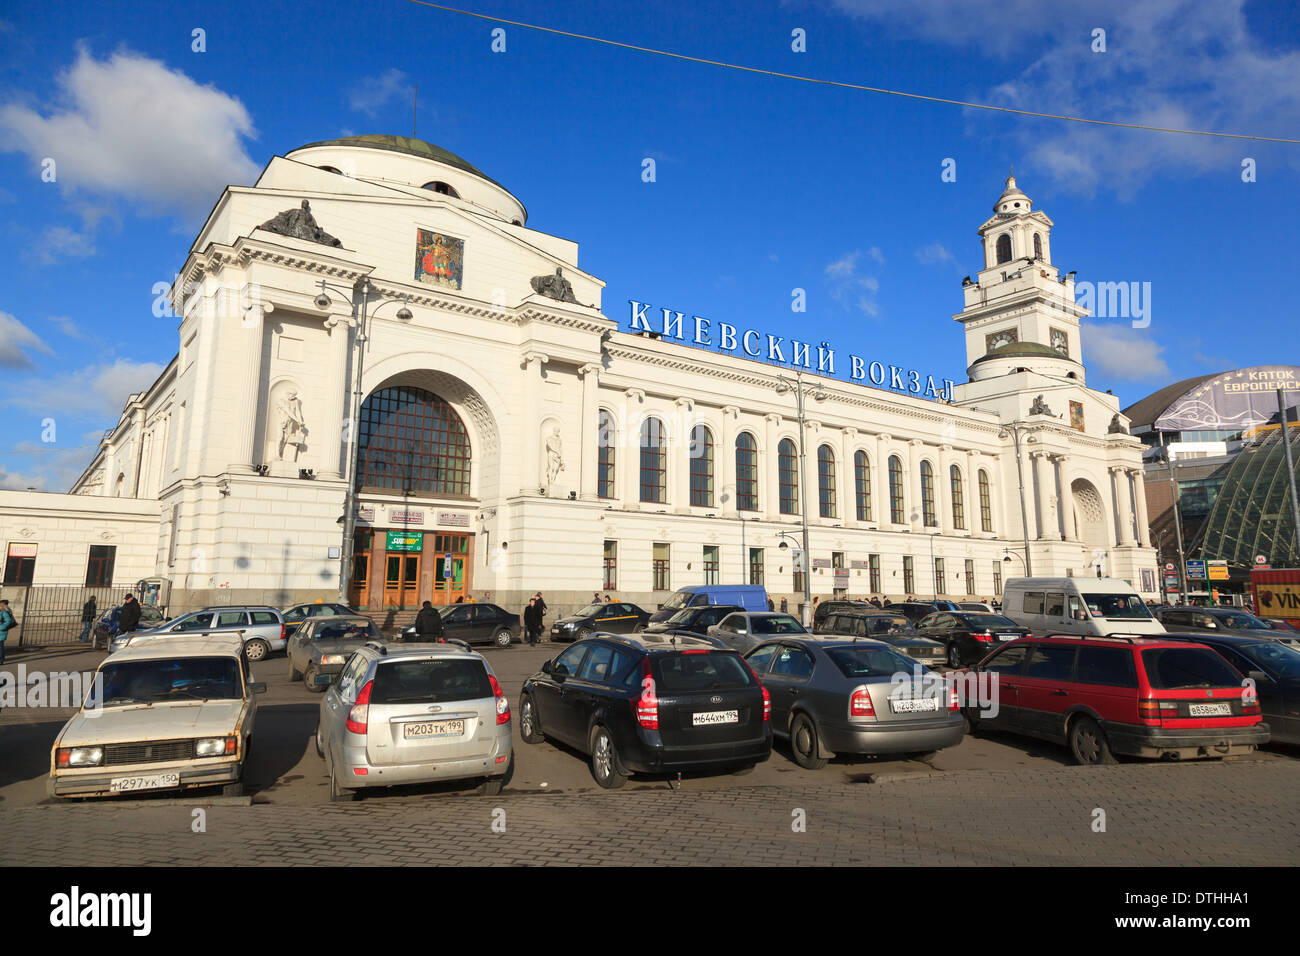 Kiyevsky railway station Stock Photo